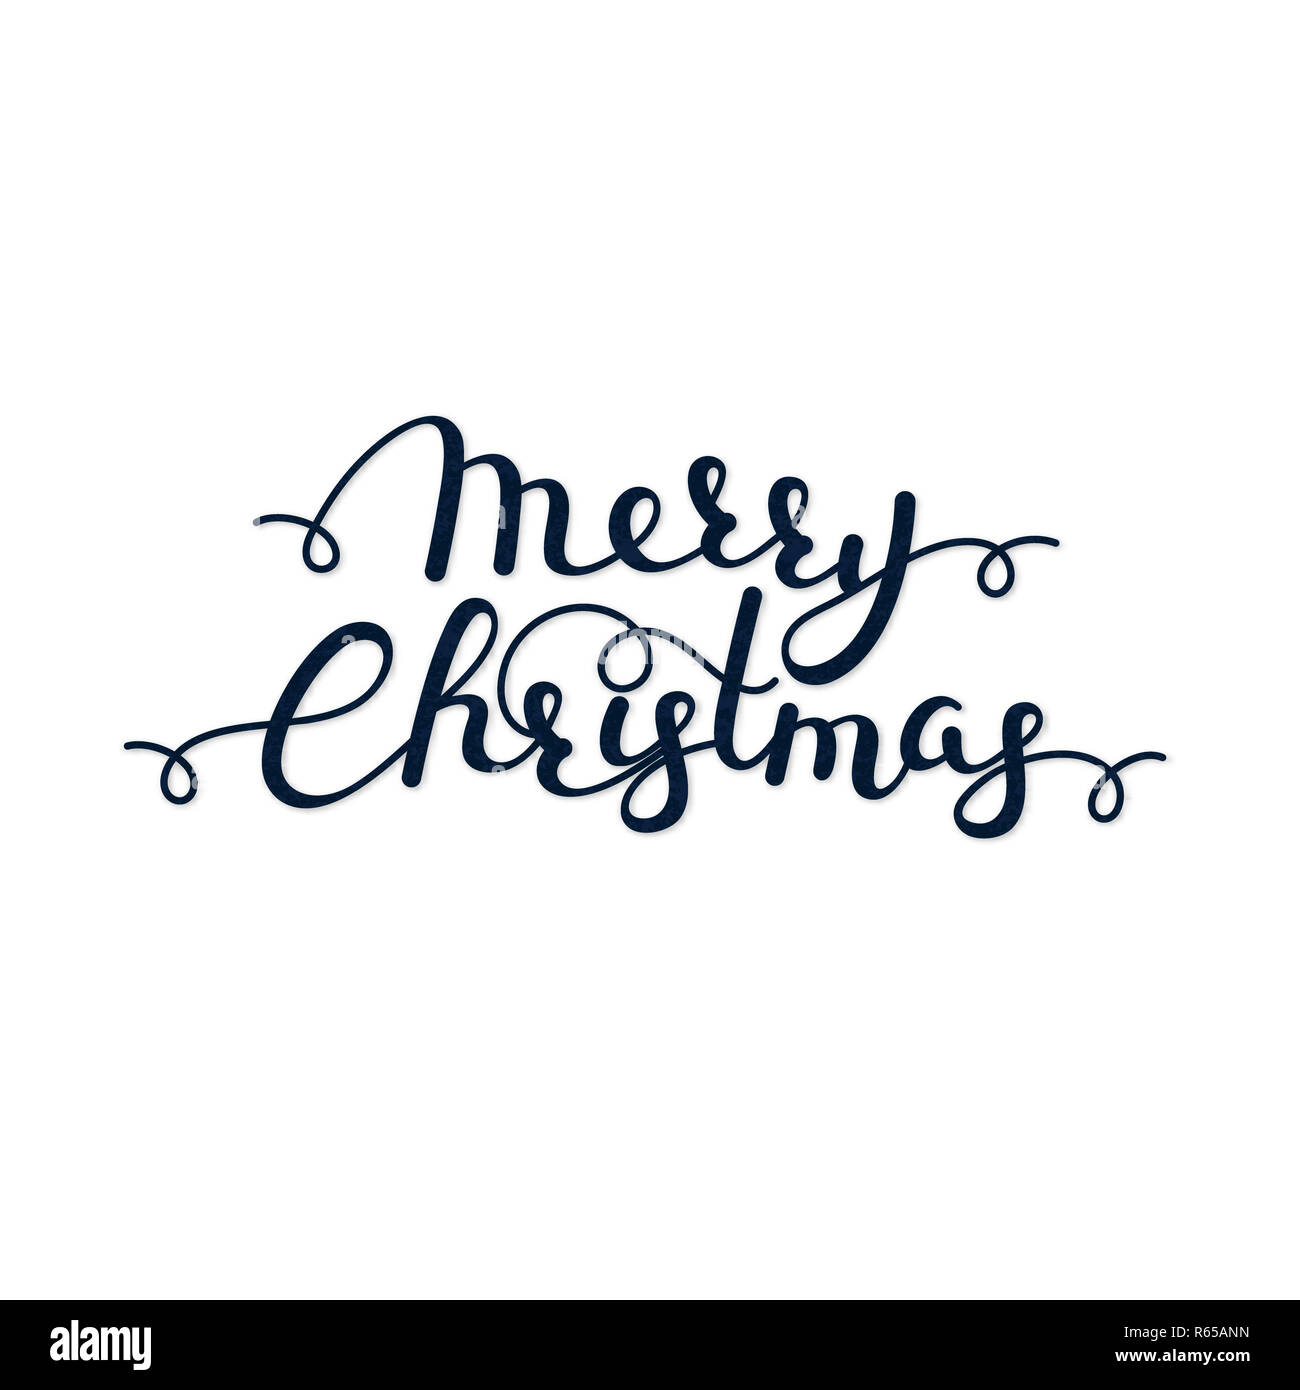 Christmas Calligraphy.Merry Christmas Handwritten Lettering Calligraphy Winter